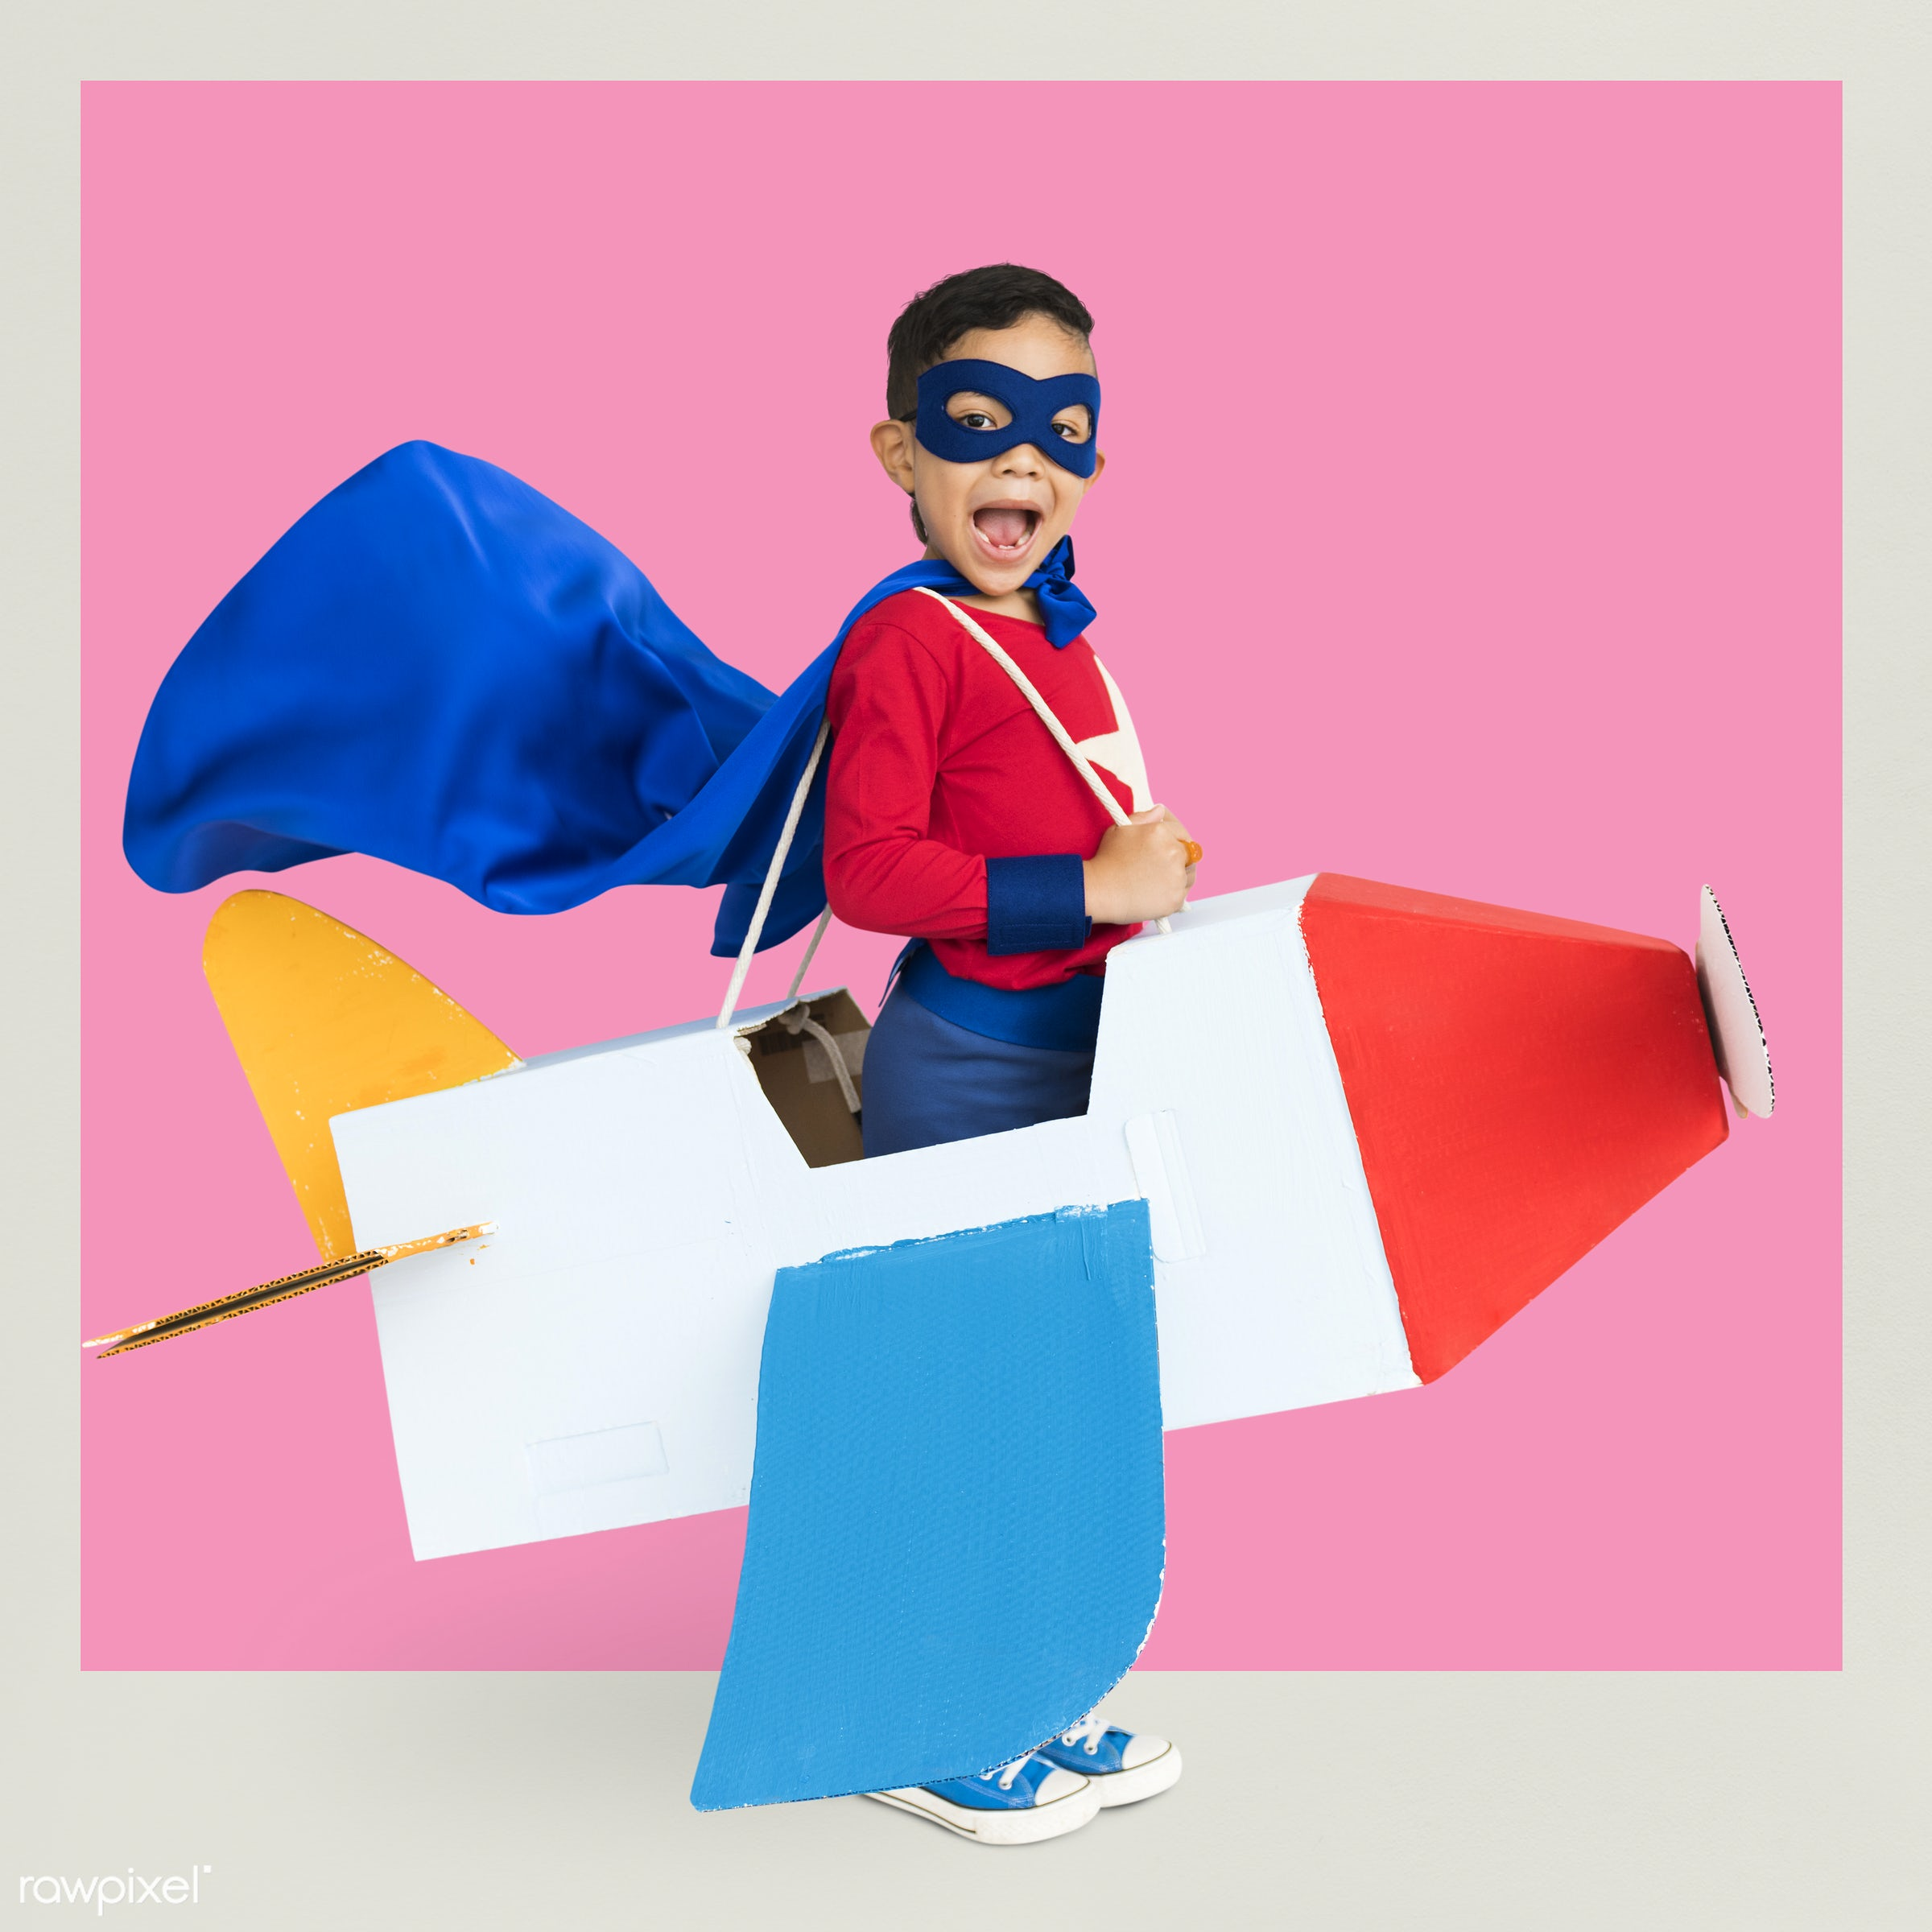 studio, brave, expression, person, freedom, little, recreation, people, kid, power, aspirations, smiling, isolated, dream,...